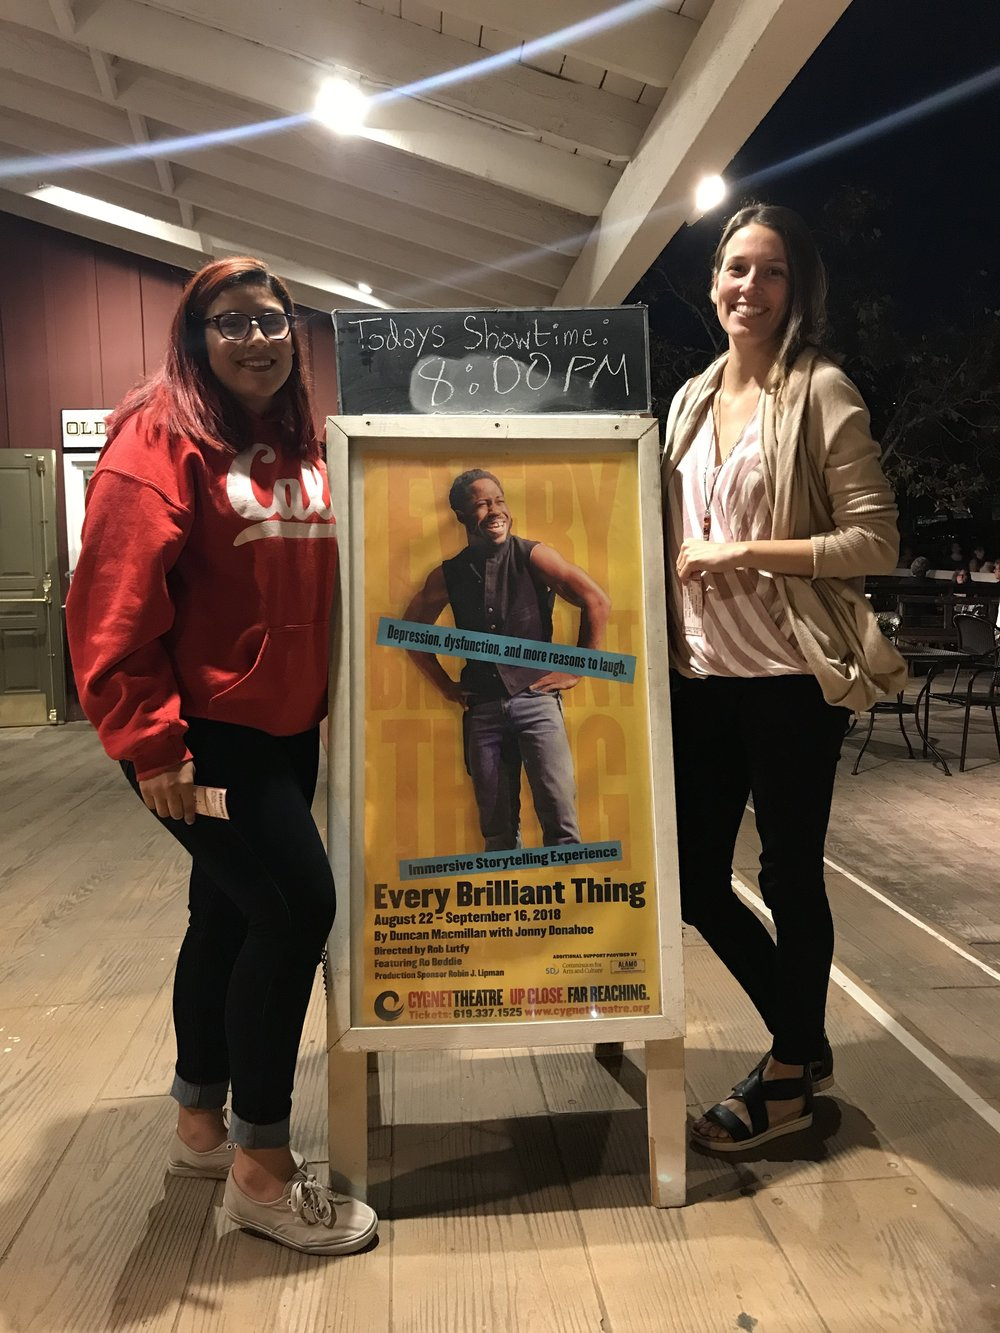 An image of Alicia and her mentor Kerrie standing in front of a sign for Every Brilliant Thing, a play that they went to see together.